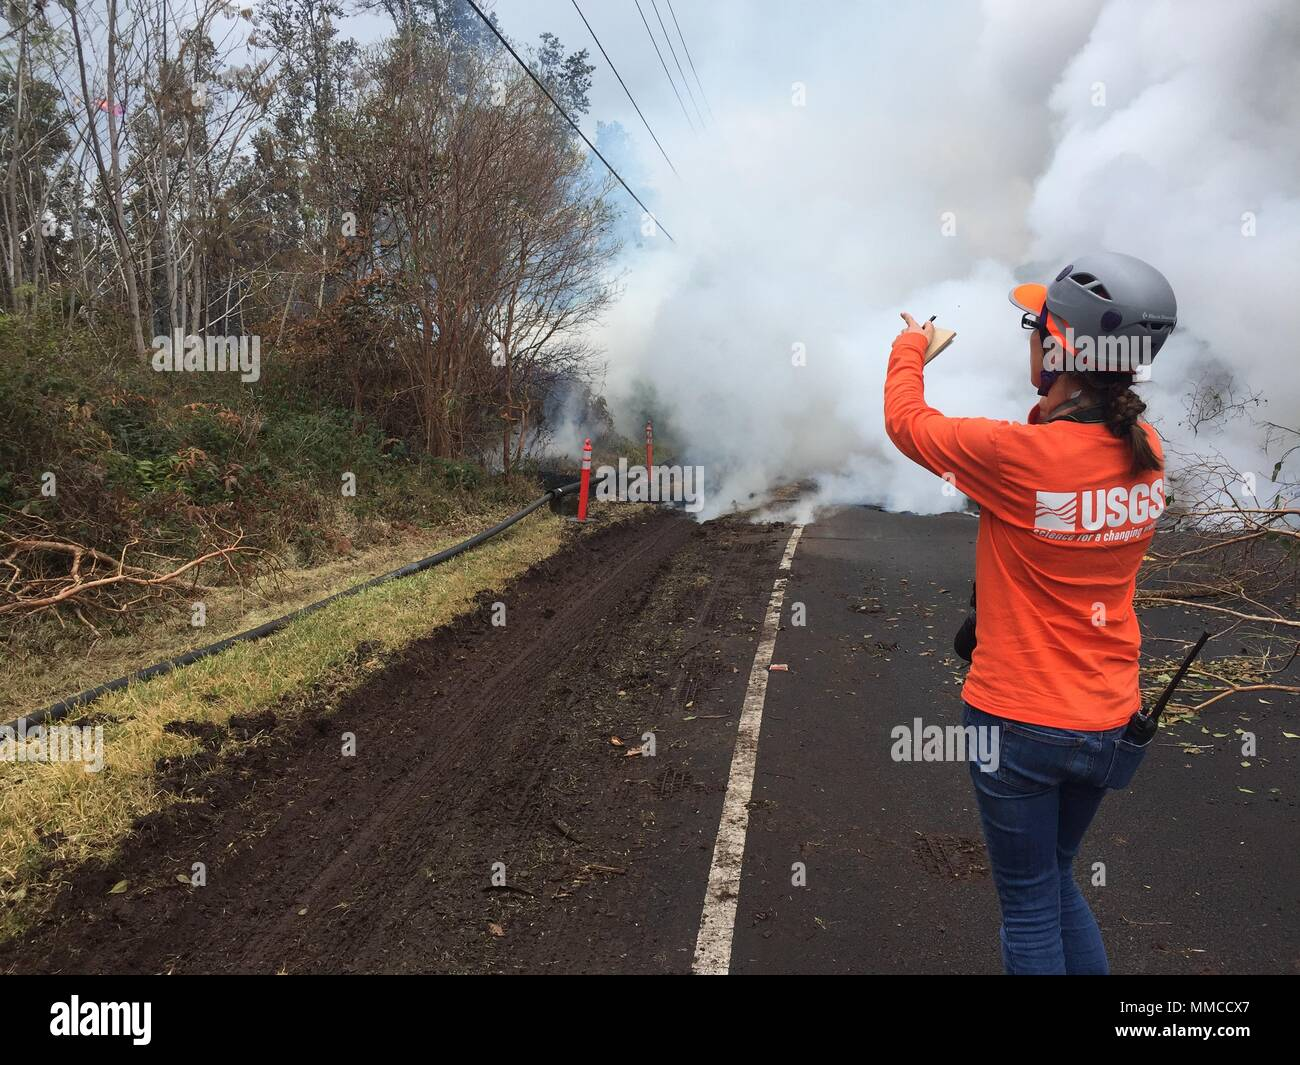 Leilani Estates, Hawaii. May 9, 2018. A U.S. Geologic Survey scientist records a new fissure venting steam along Pohoiki Road caused by the Kilauea volcano eruption May 9, 2018 in Leilani Estates, Hawaii. The recent eruption continues destroying homes, forcing evacuations and spewing lava and poison gas on the Big Island of Hawaii. Credit: Planetpix/Alamy Live News - Stock Image